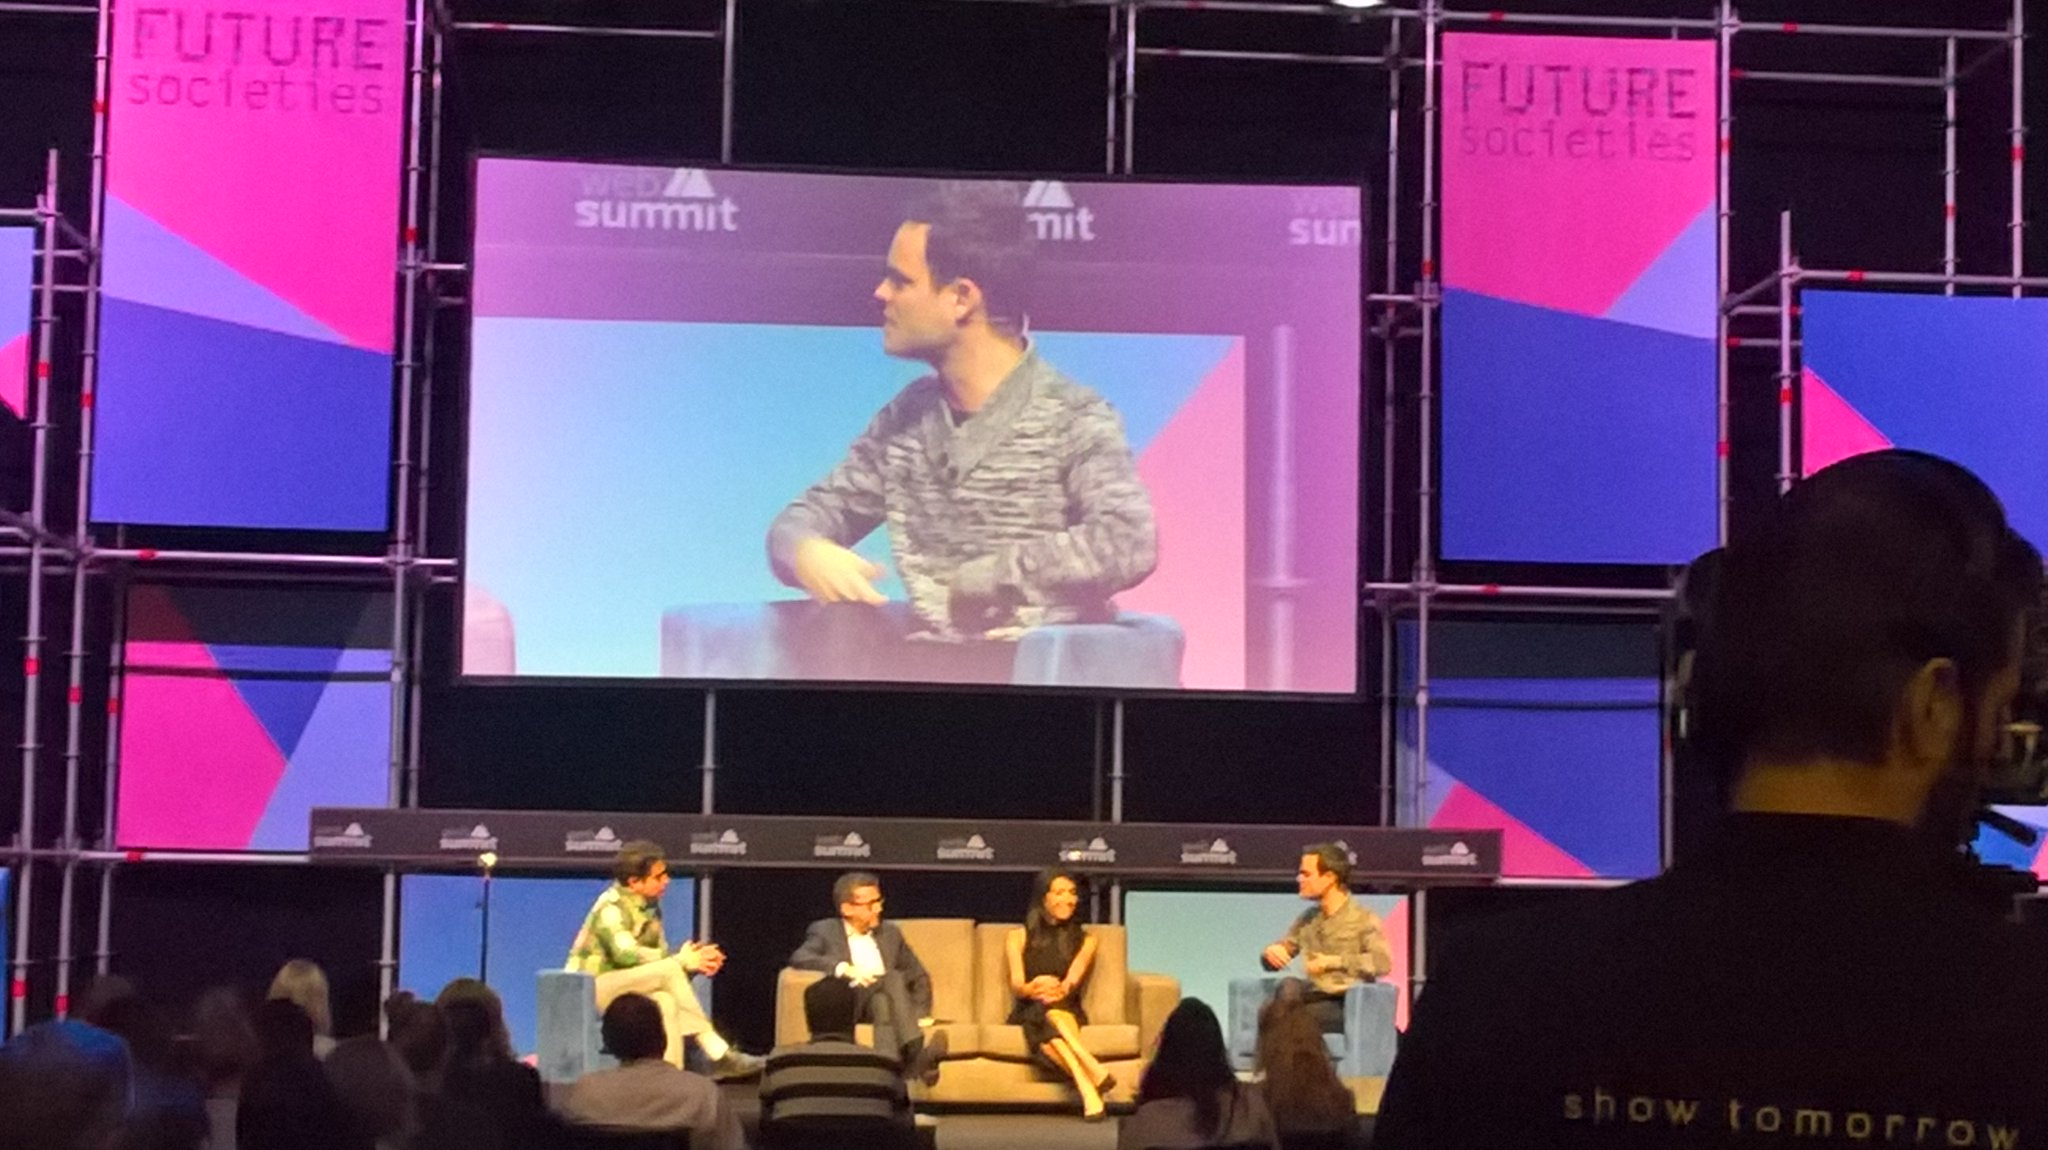 Mathieu Nebra of @OpenClassrooms on stage #websummit2016 #futuresocieties #frenchtech https://t.co/hHE5RiBkoQ